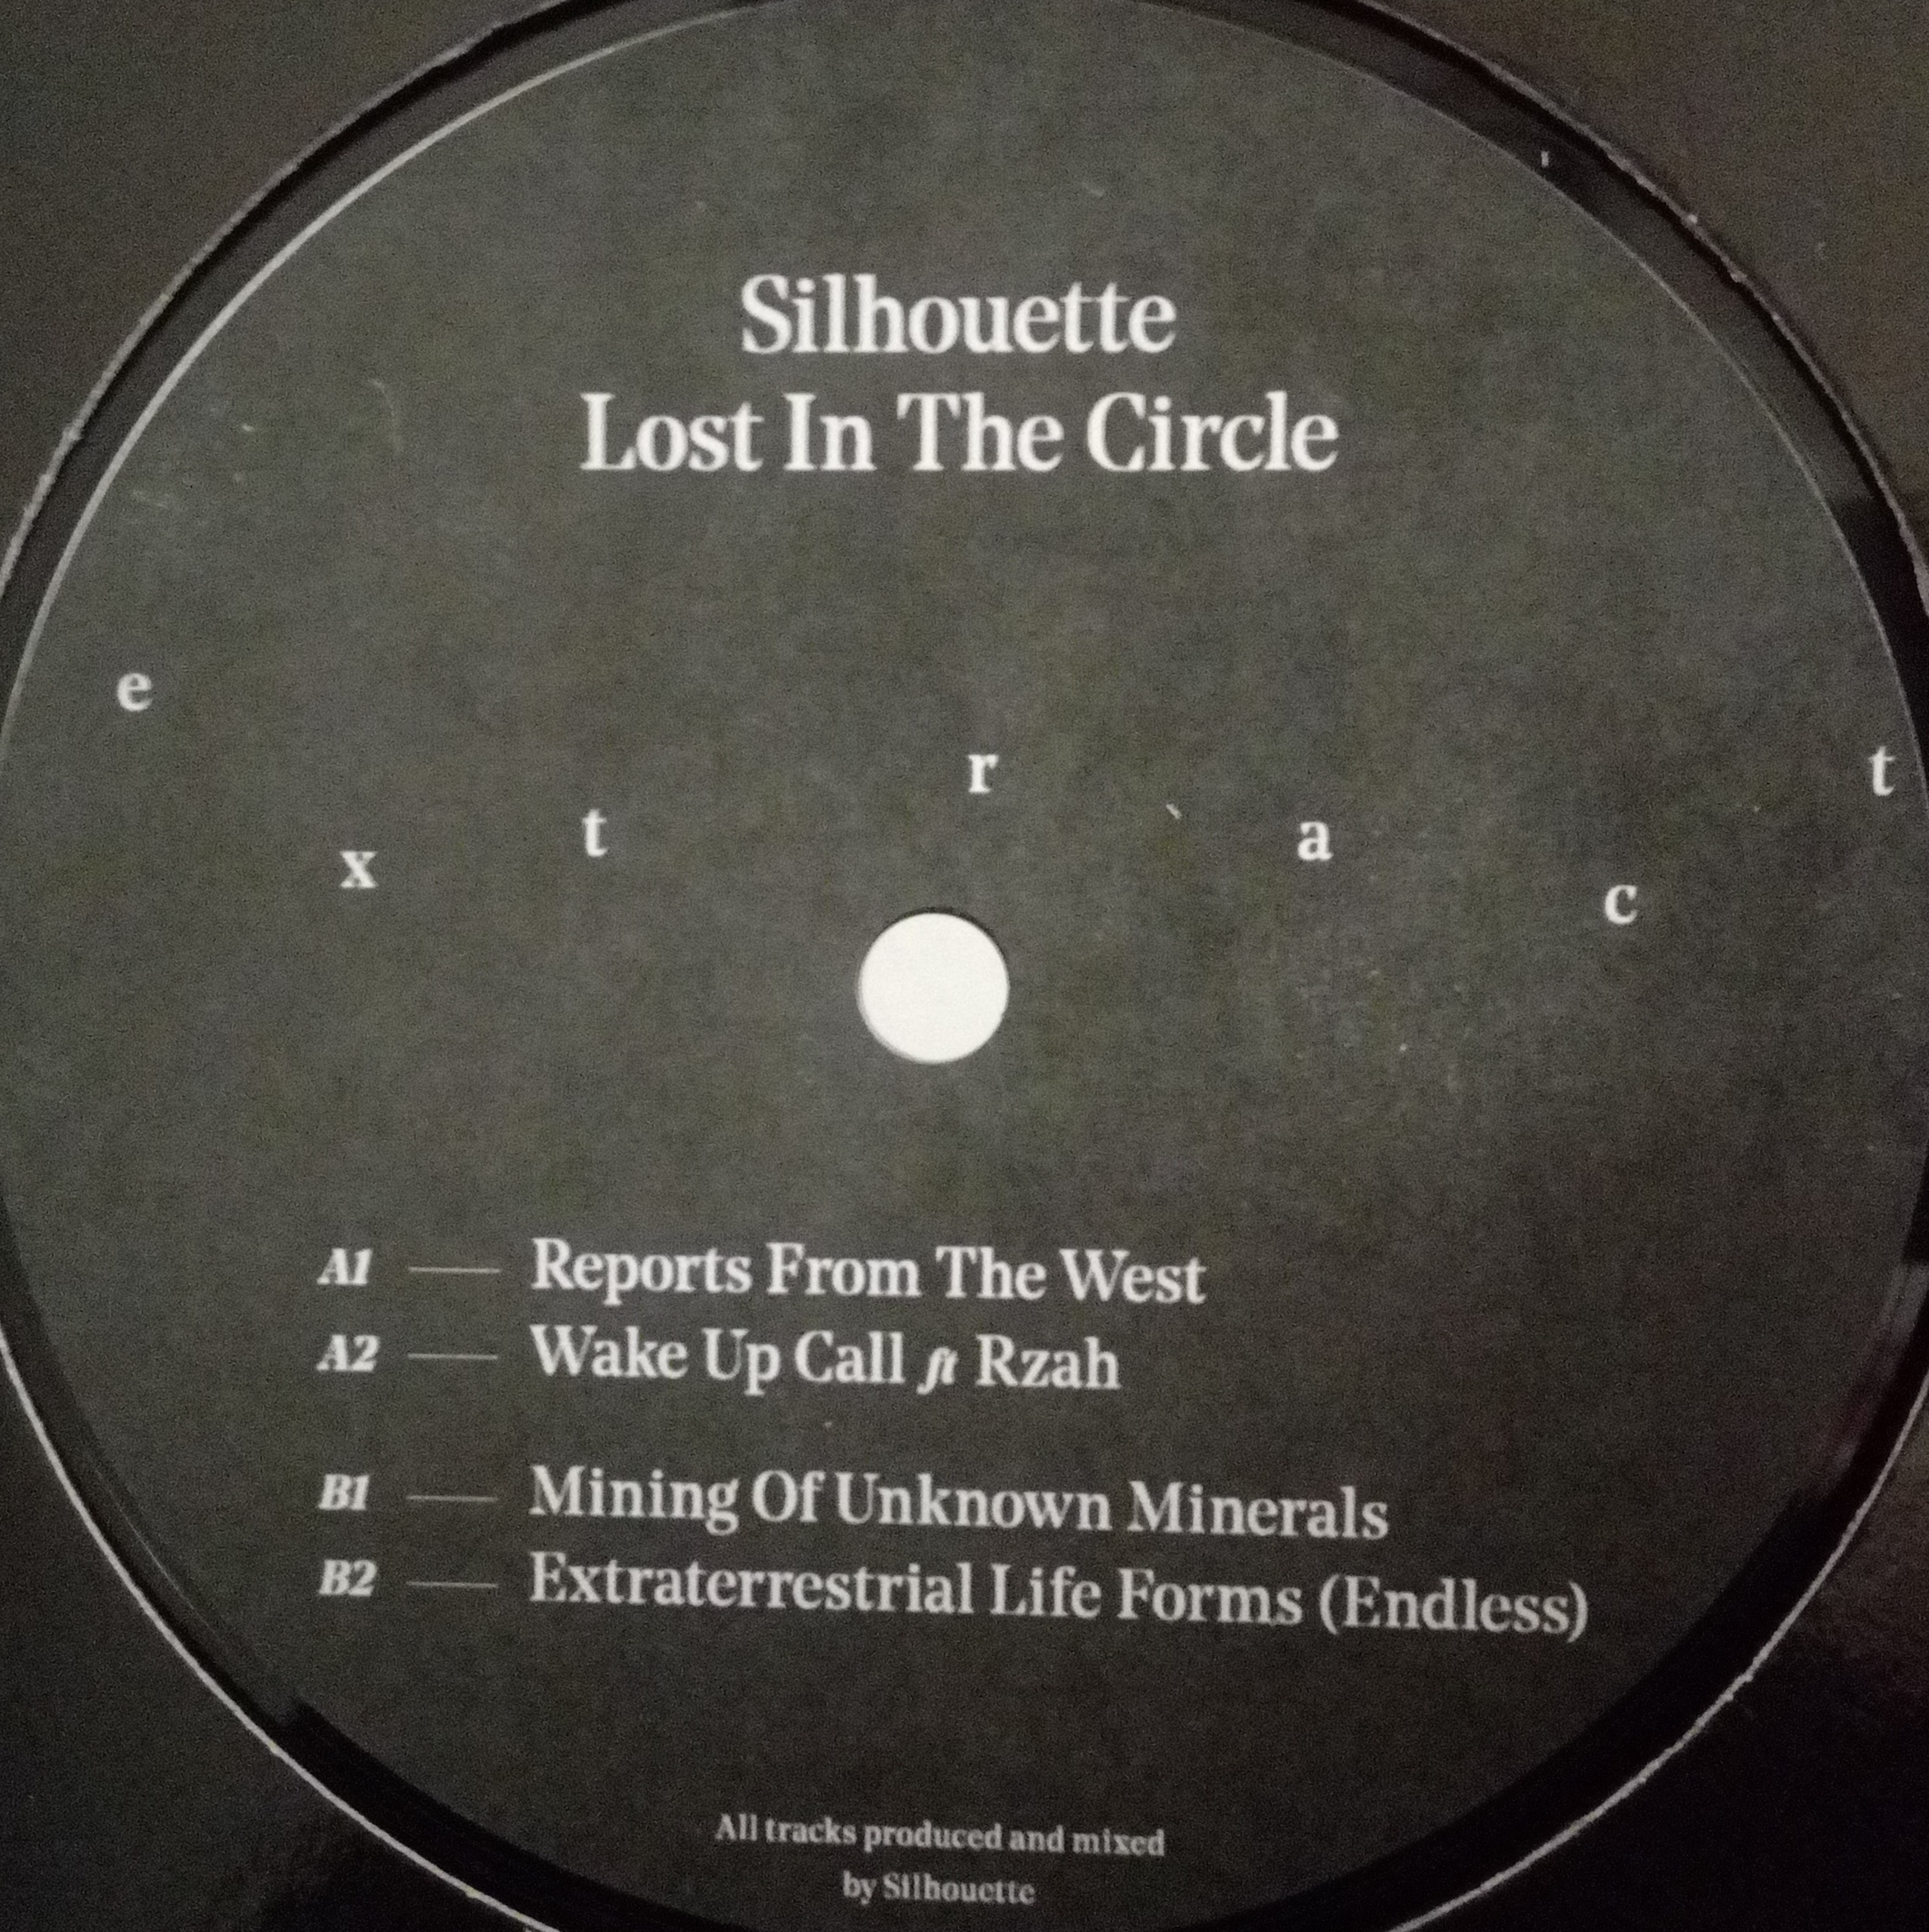 2.2 | Gramcast : Silhouette Lost In The Circle (Extract) | Vinyl Release Party